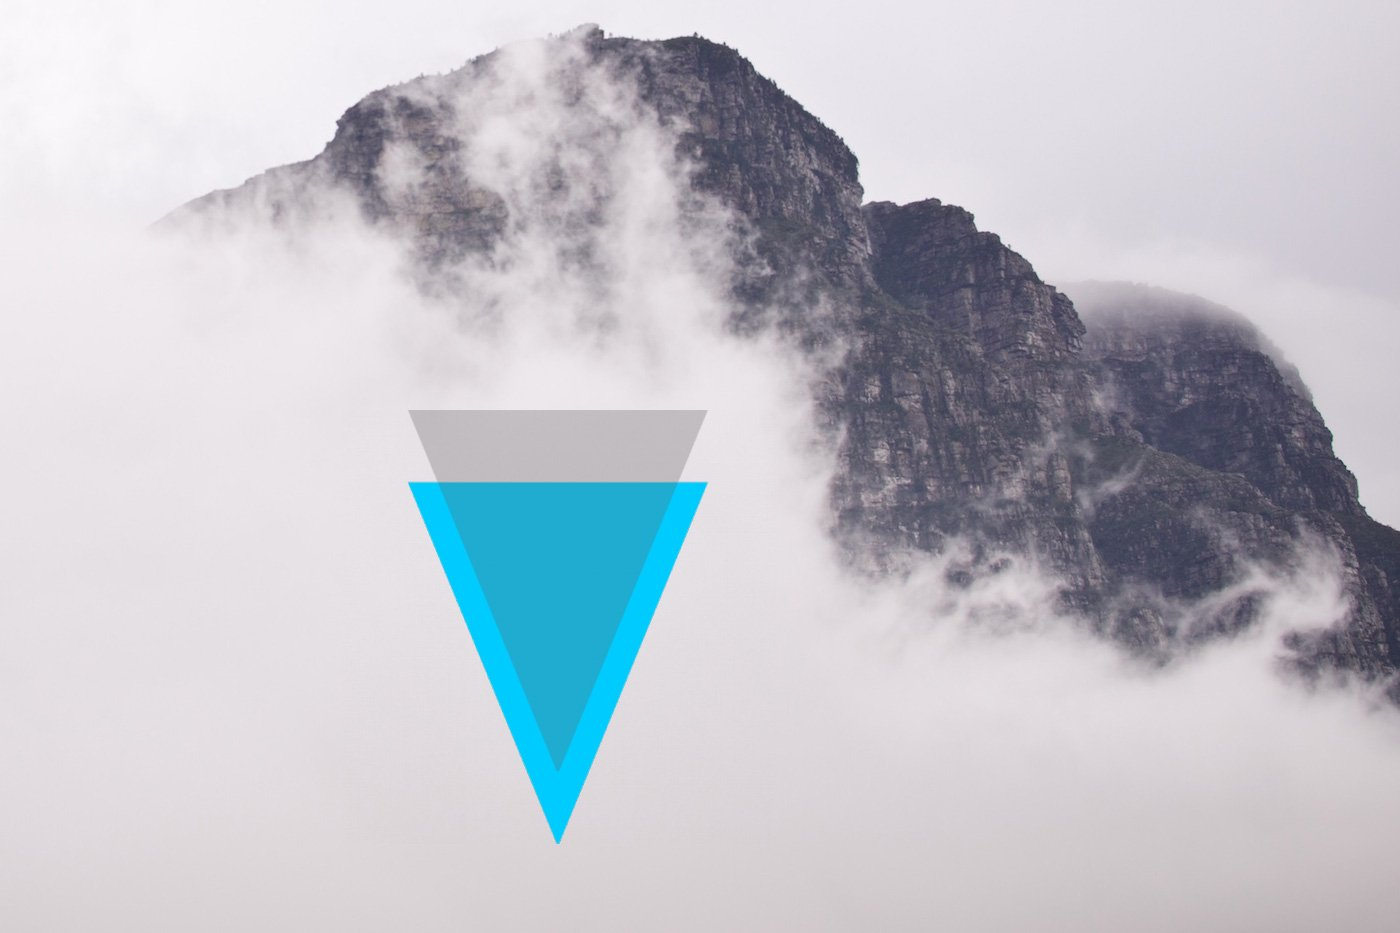 Will Verge (XVG) Imminent Halving Approach Add To Its Bullishness? 14